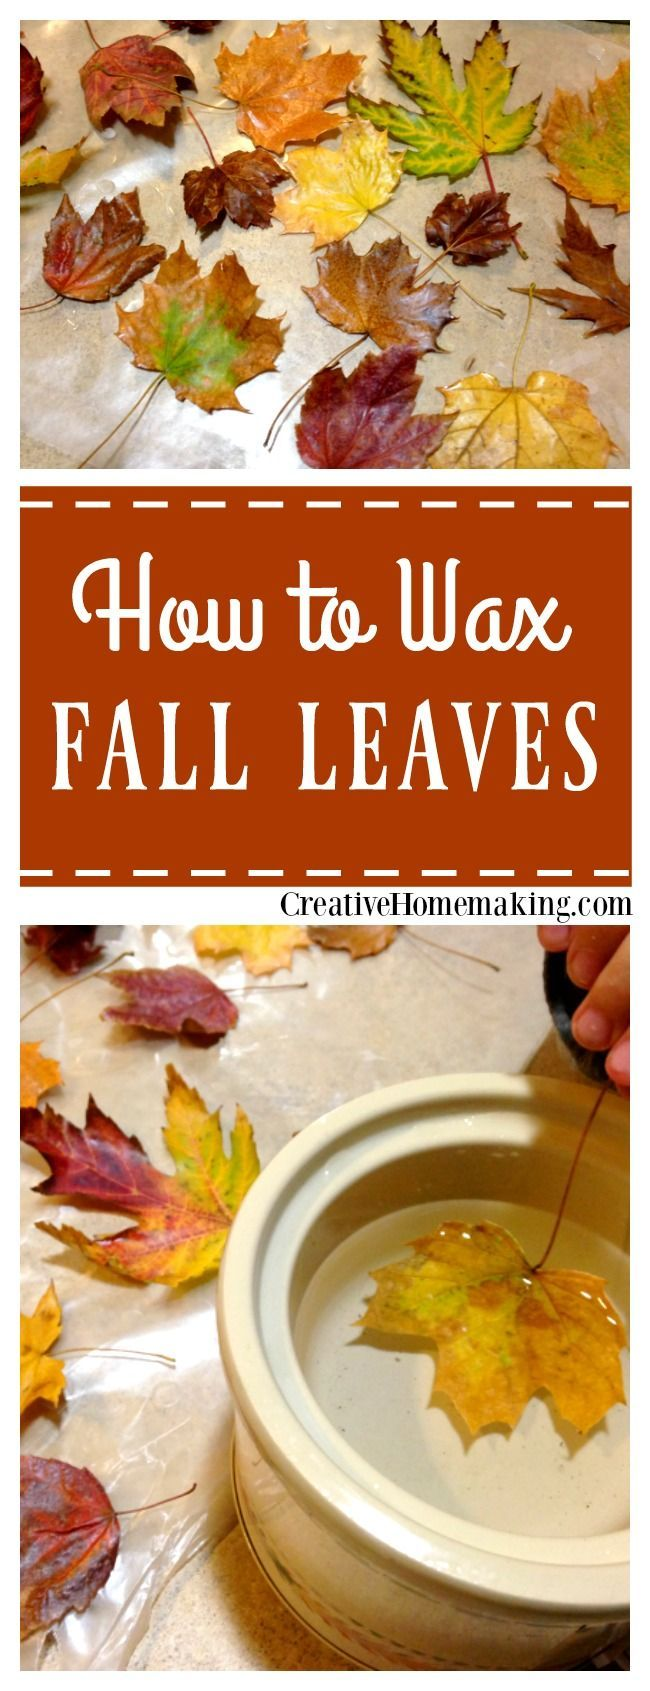 Easy instructions for waxing fall leaves for autumn or Thanksgiving decorations.